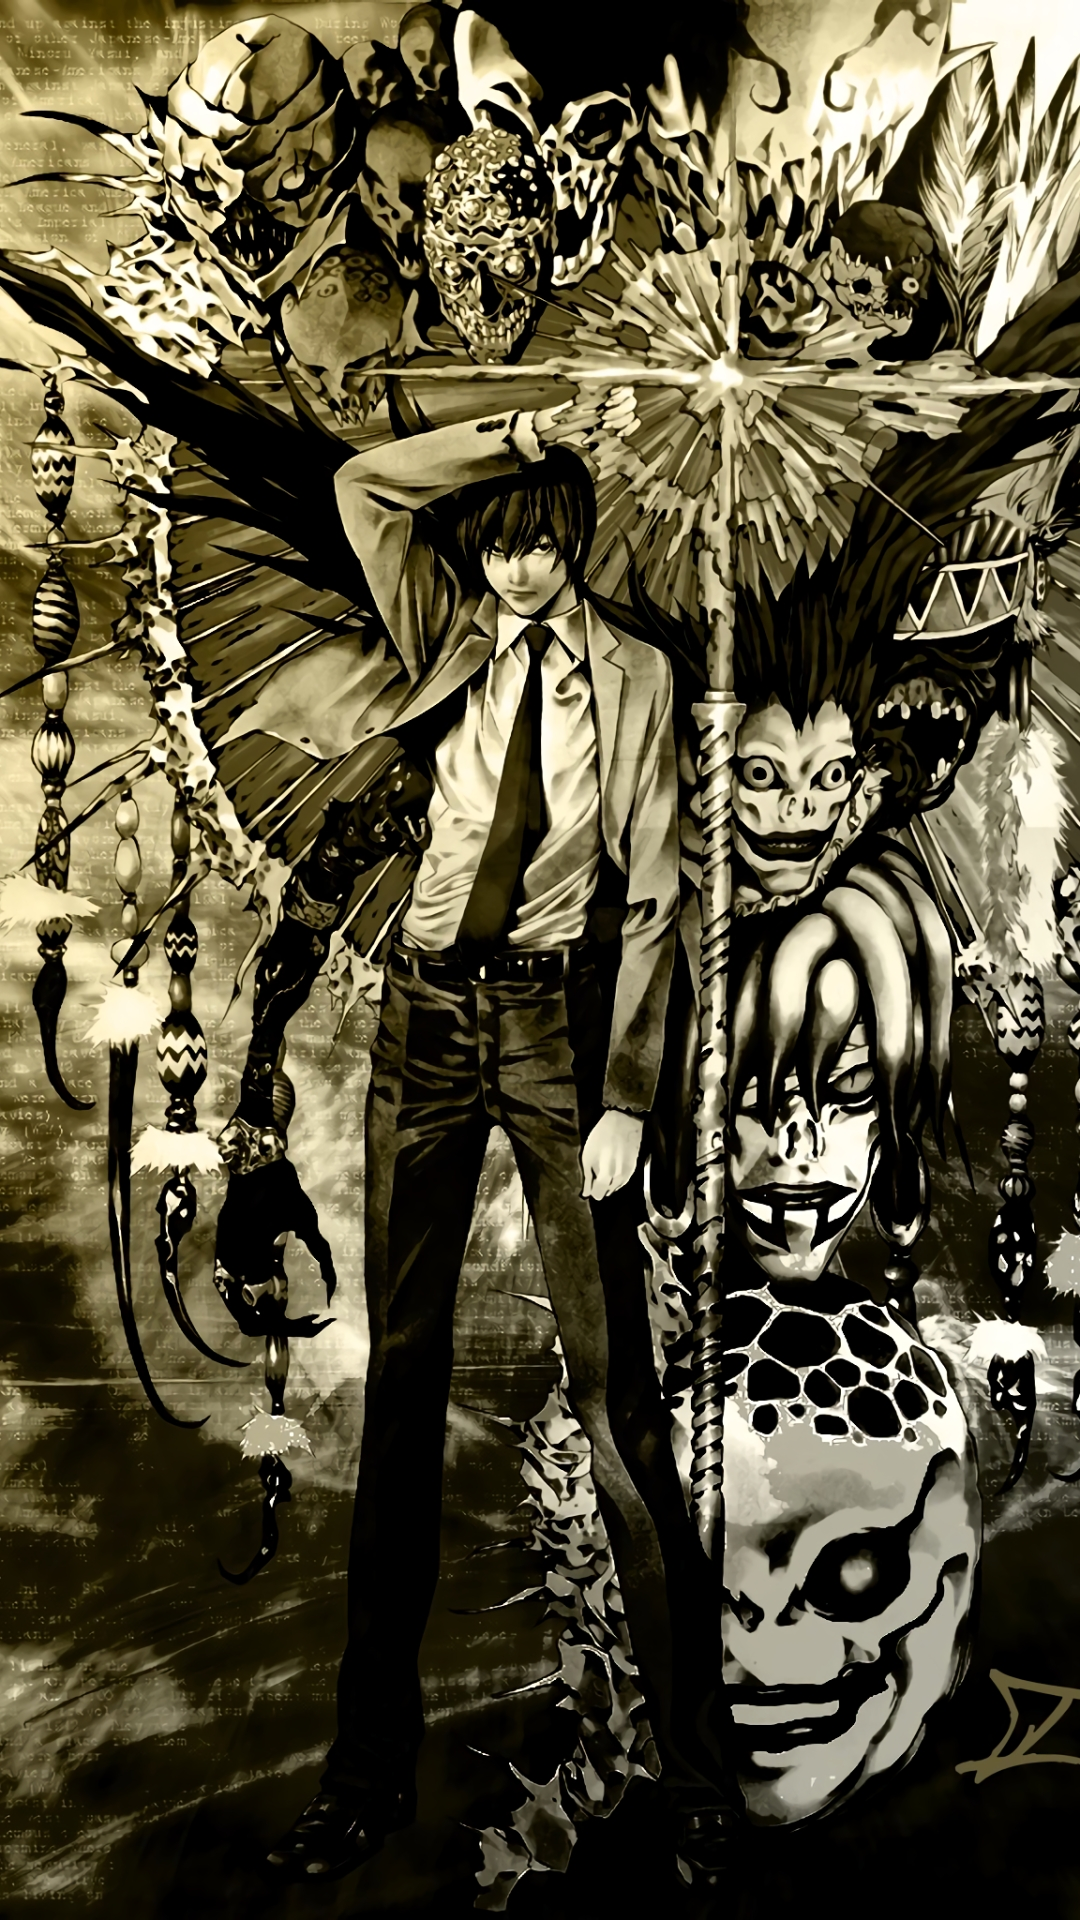 97 death note htc/windows phone 8x (720x1280) wallpapers - mobile abyss